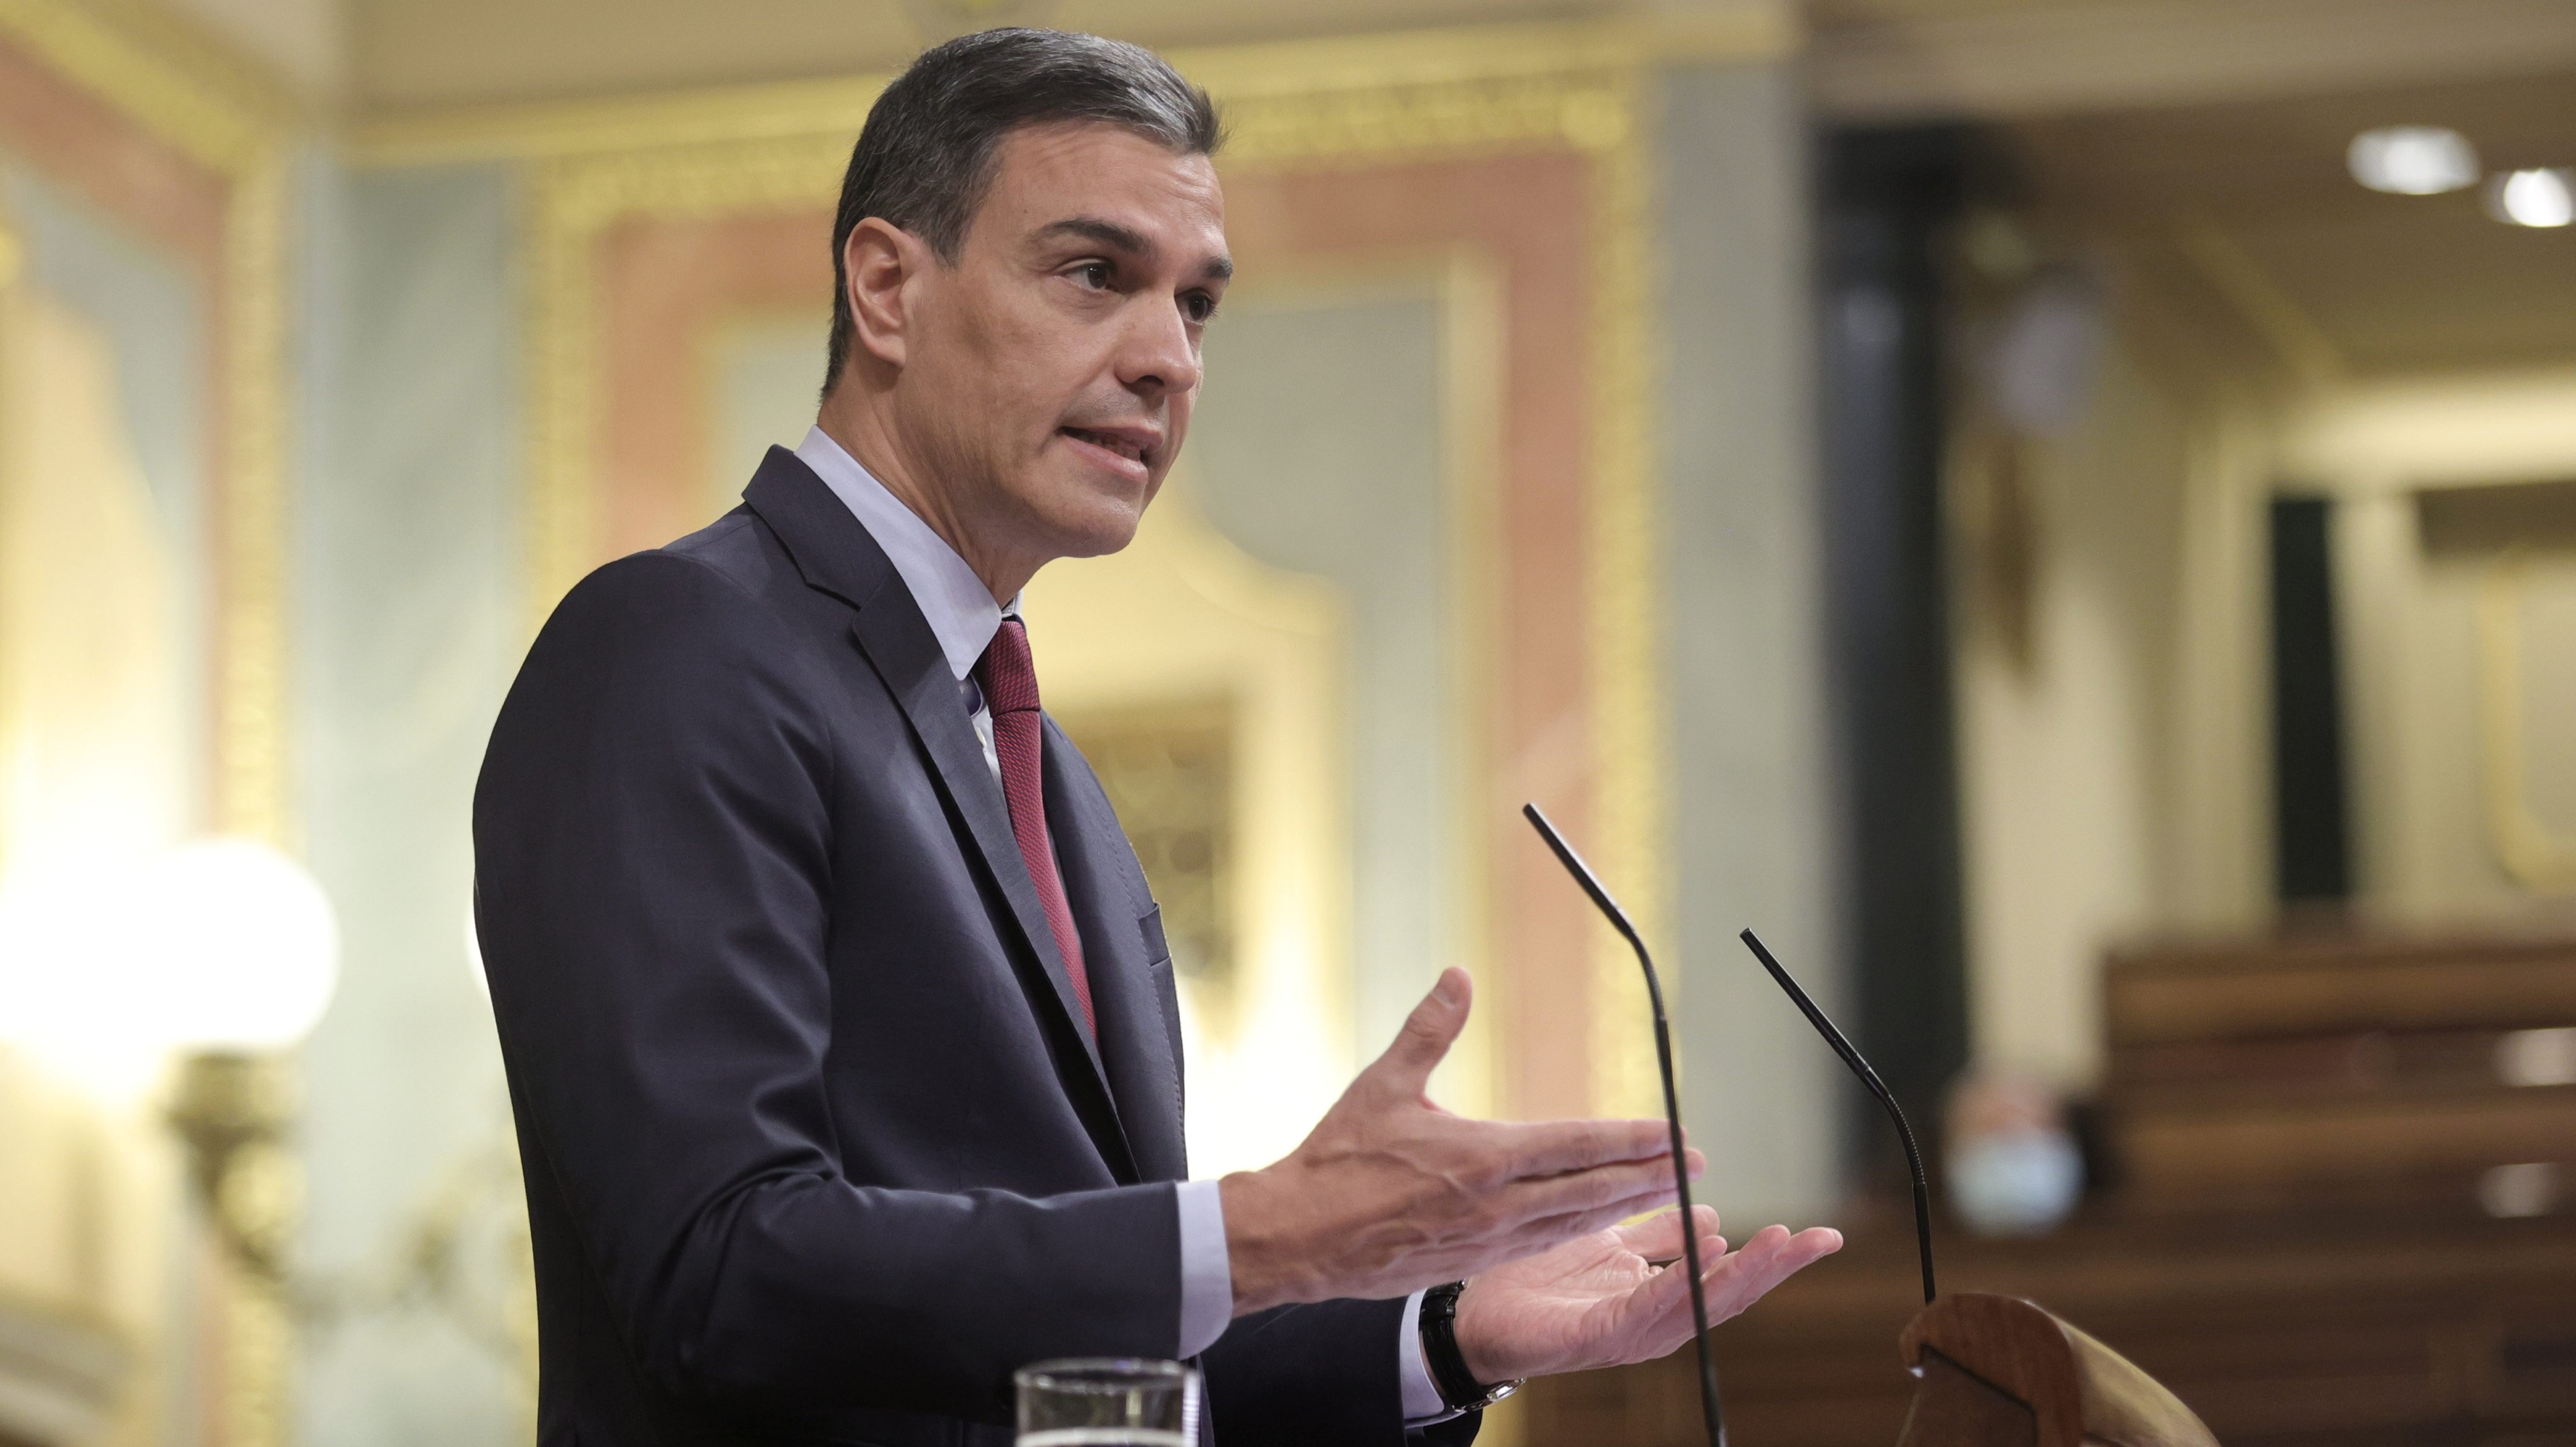 The President Of The Government Justifies The Pardons Of The 'proces' In The Session Of Control In Congress